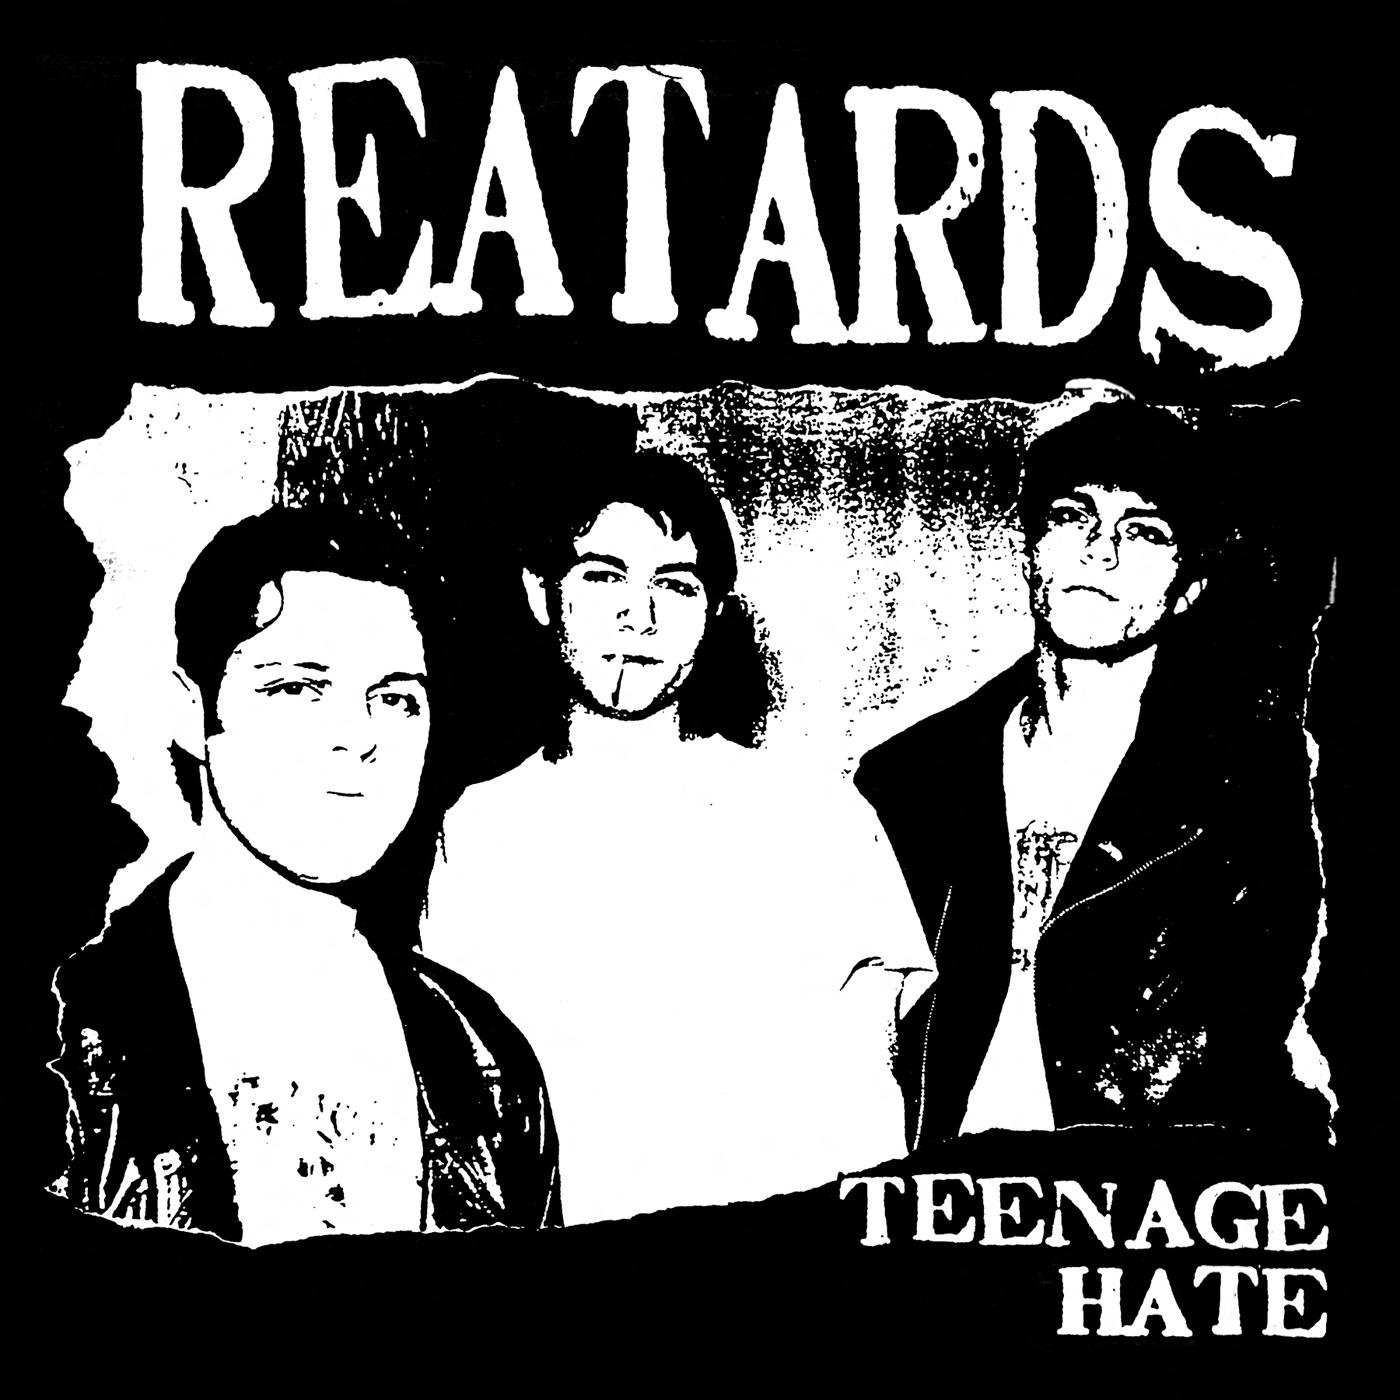 garage rock teenage hate